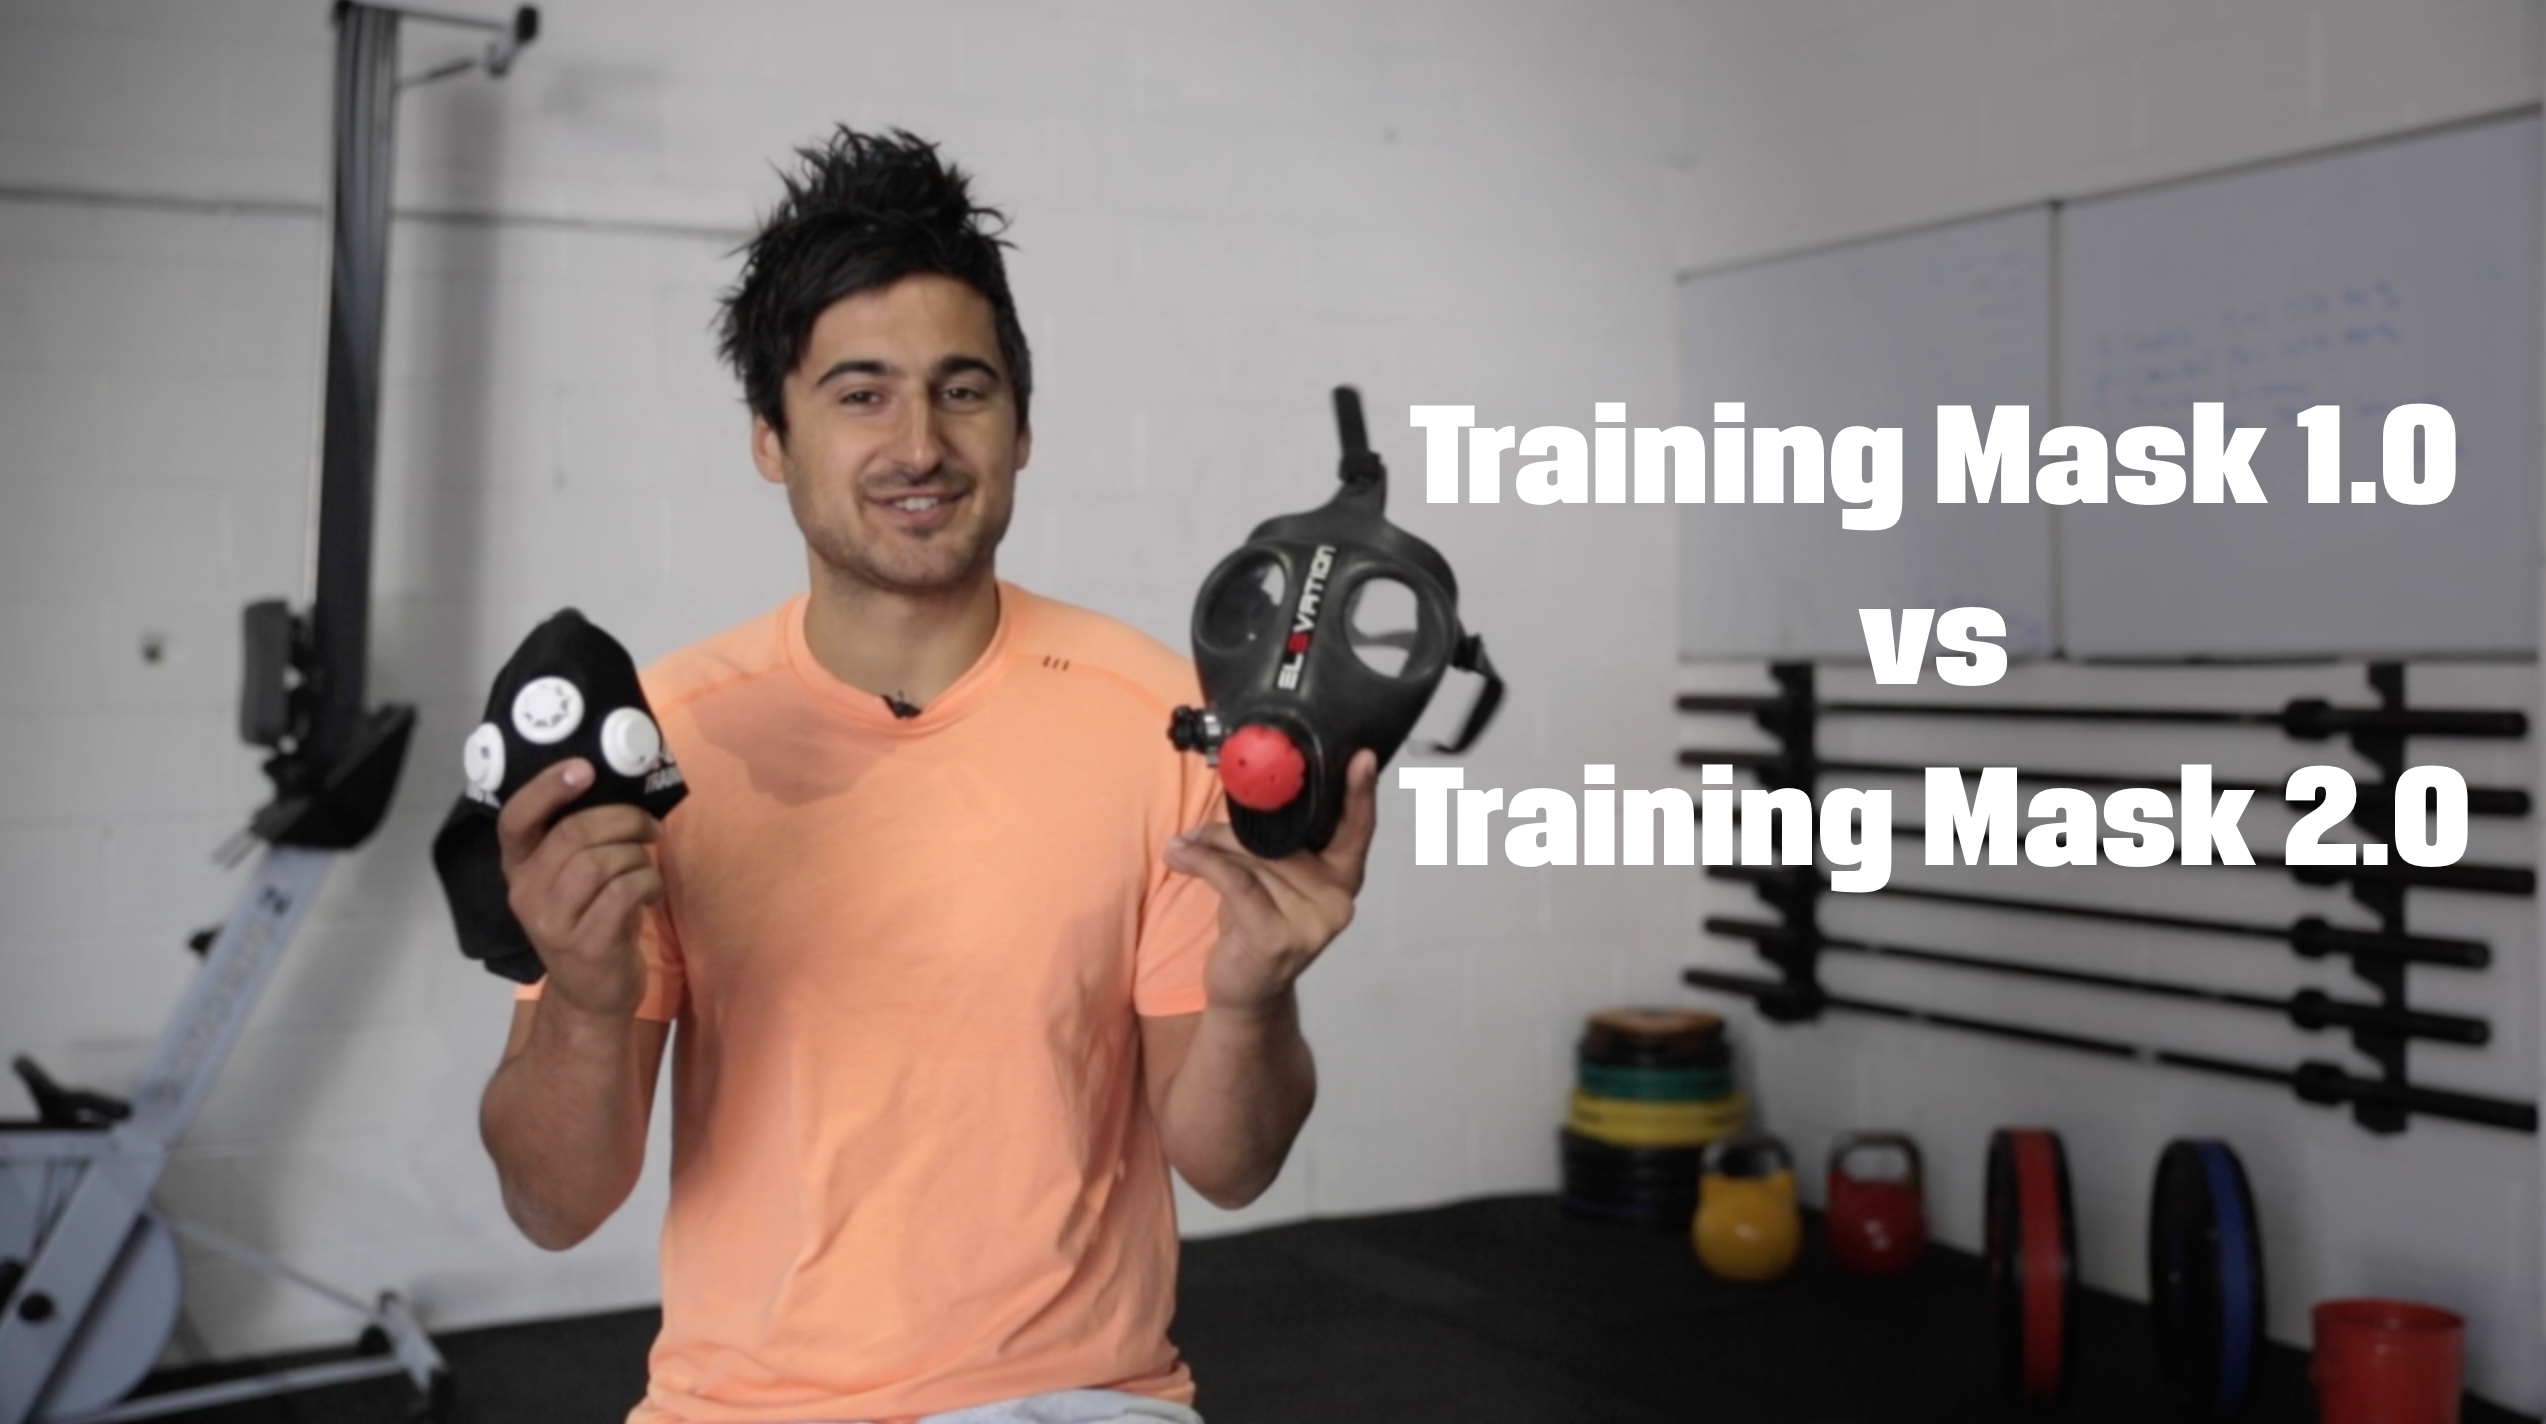 Training Mask 1 vs Training Mask 2